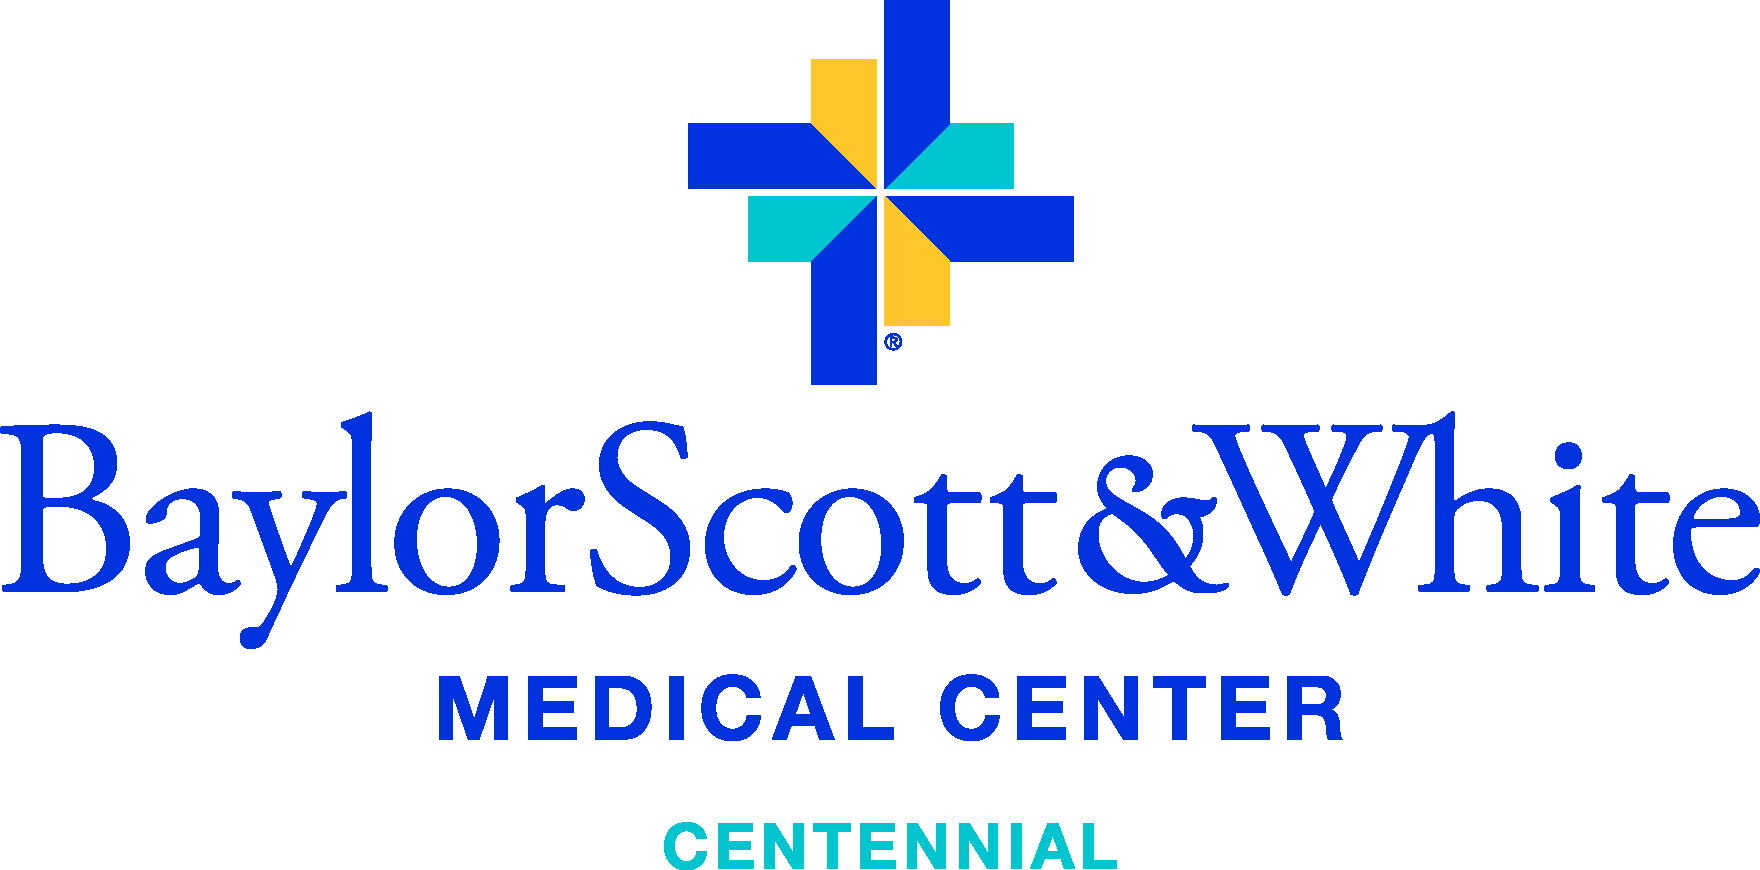 Baylor Scott & White Medical Center -Centennial